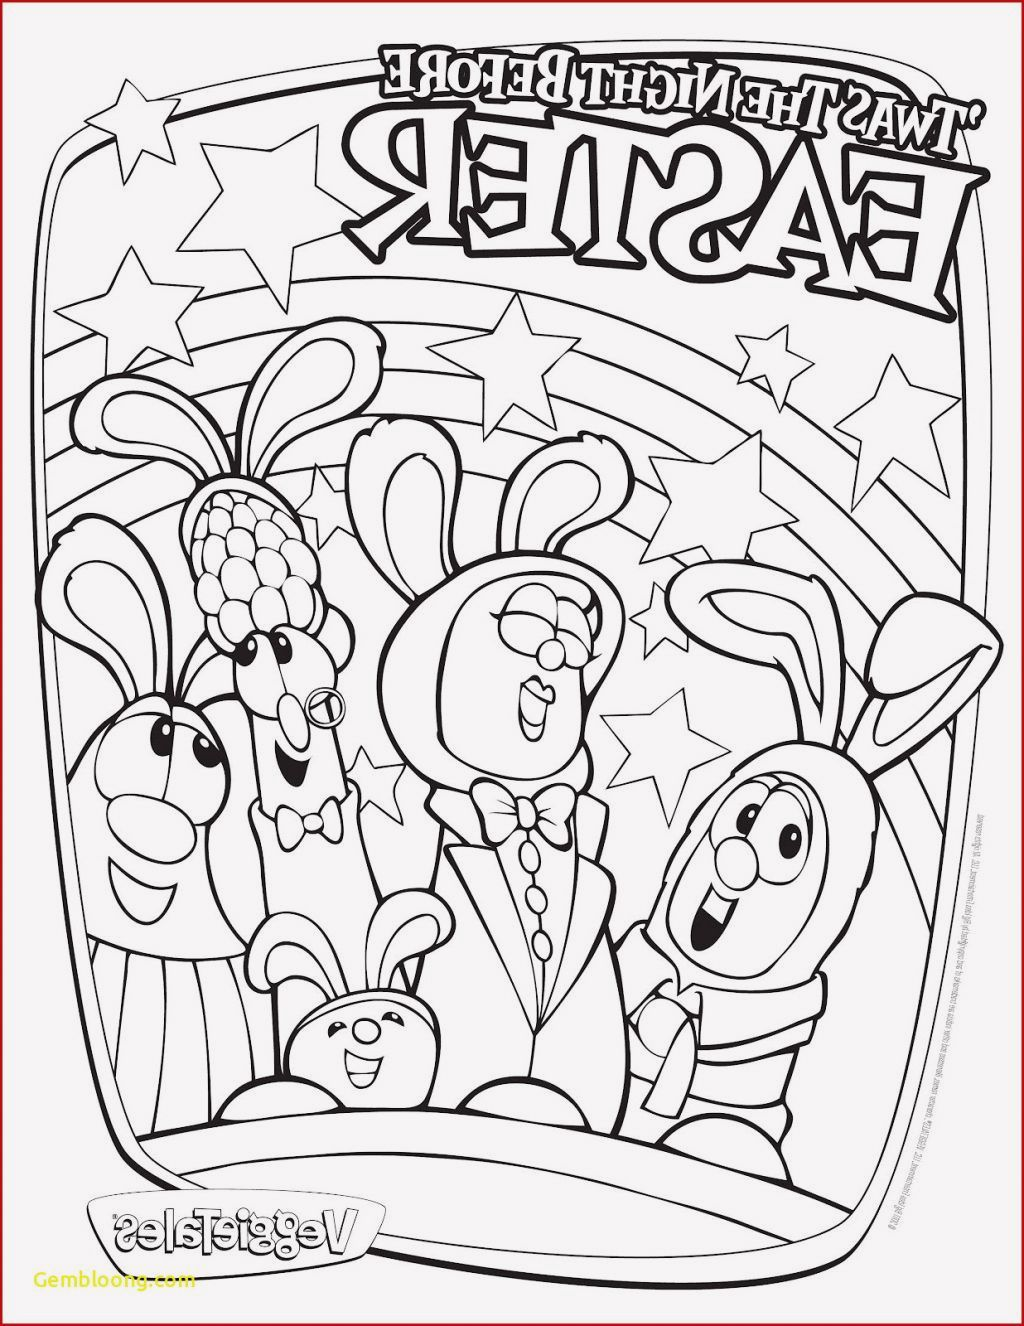 20 Hello Kitty Printable Coloring Book Pages Animal Coloring Pages Easter Coloring Pages Coloring Pages Winter